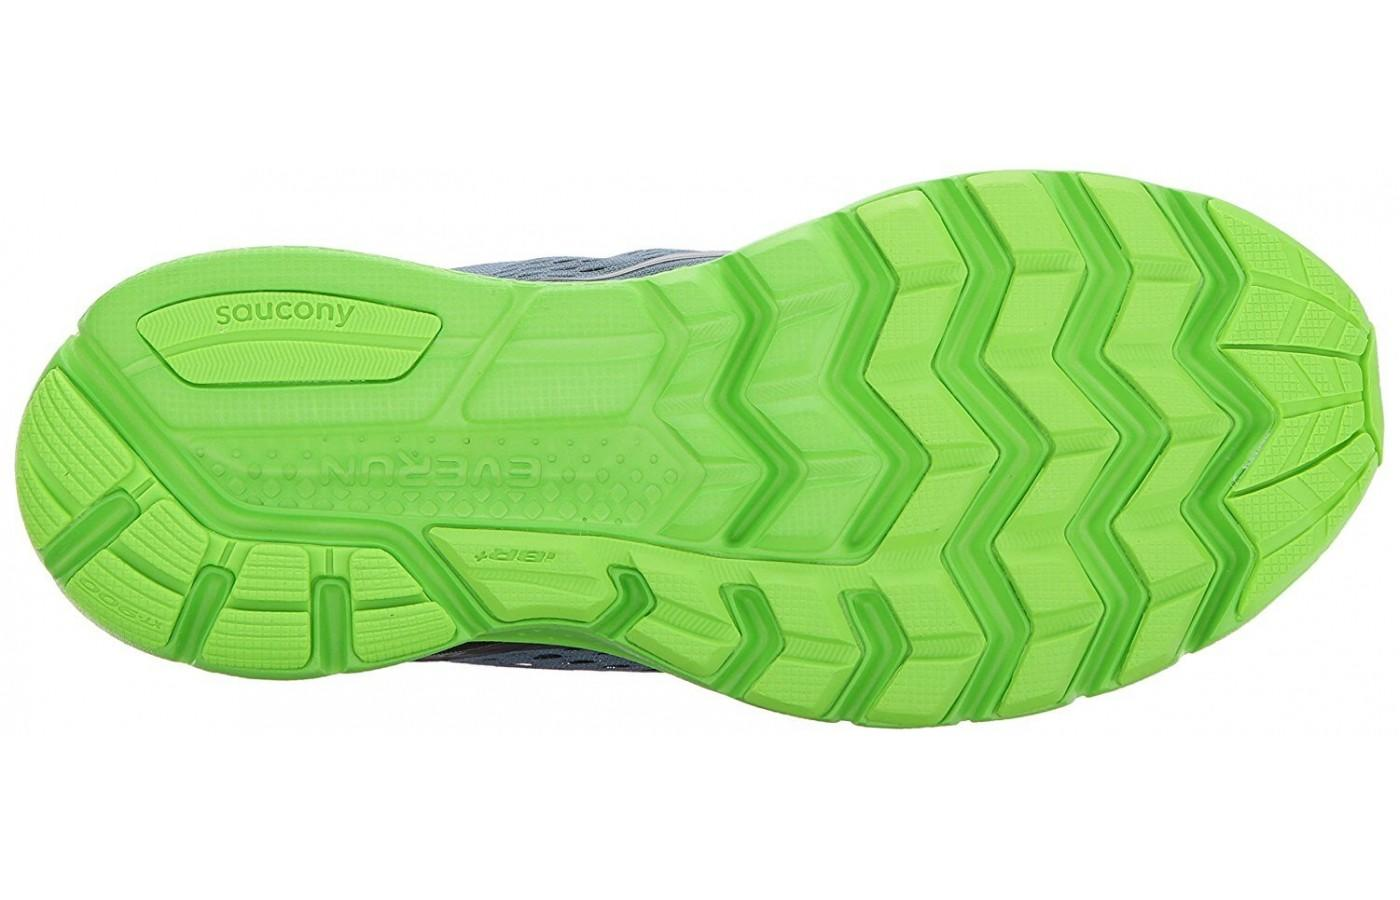 TRI-FLEX outsole offers added traction and flexibility